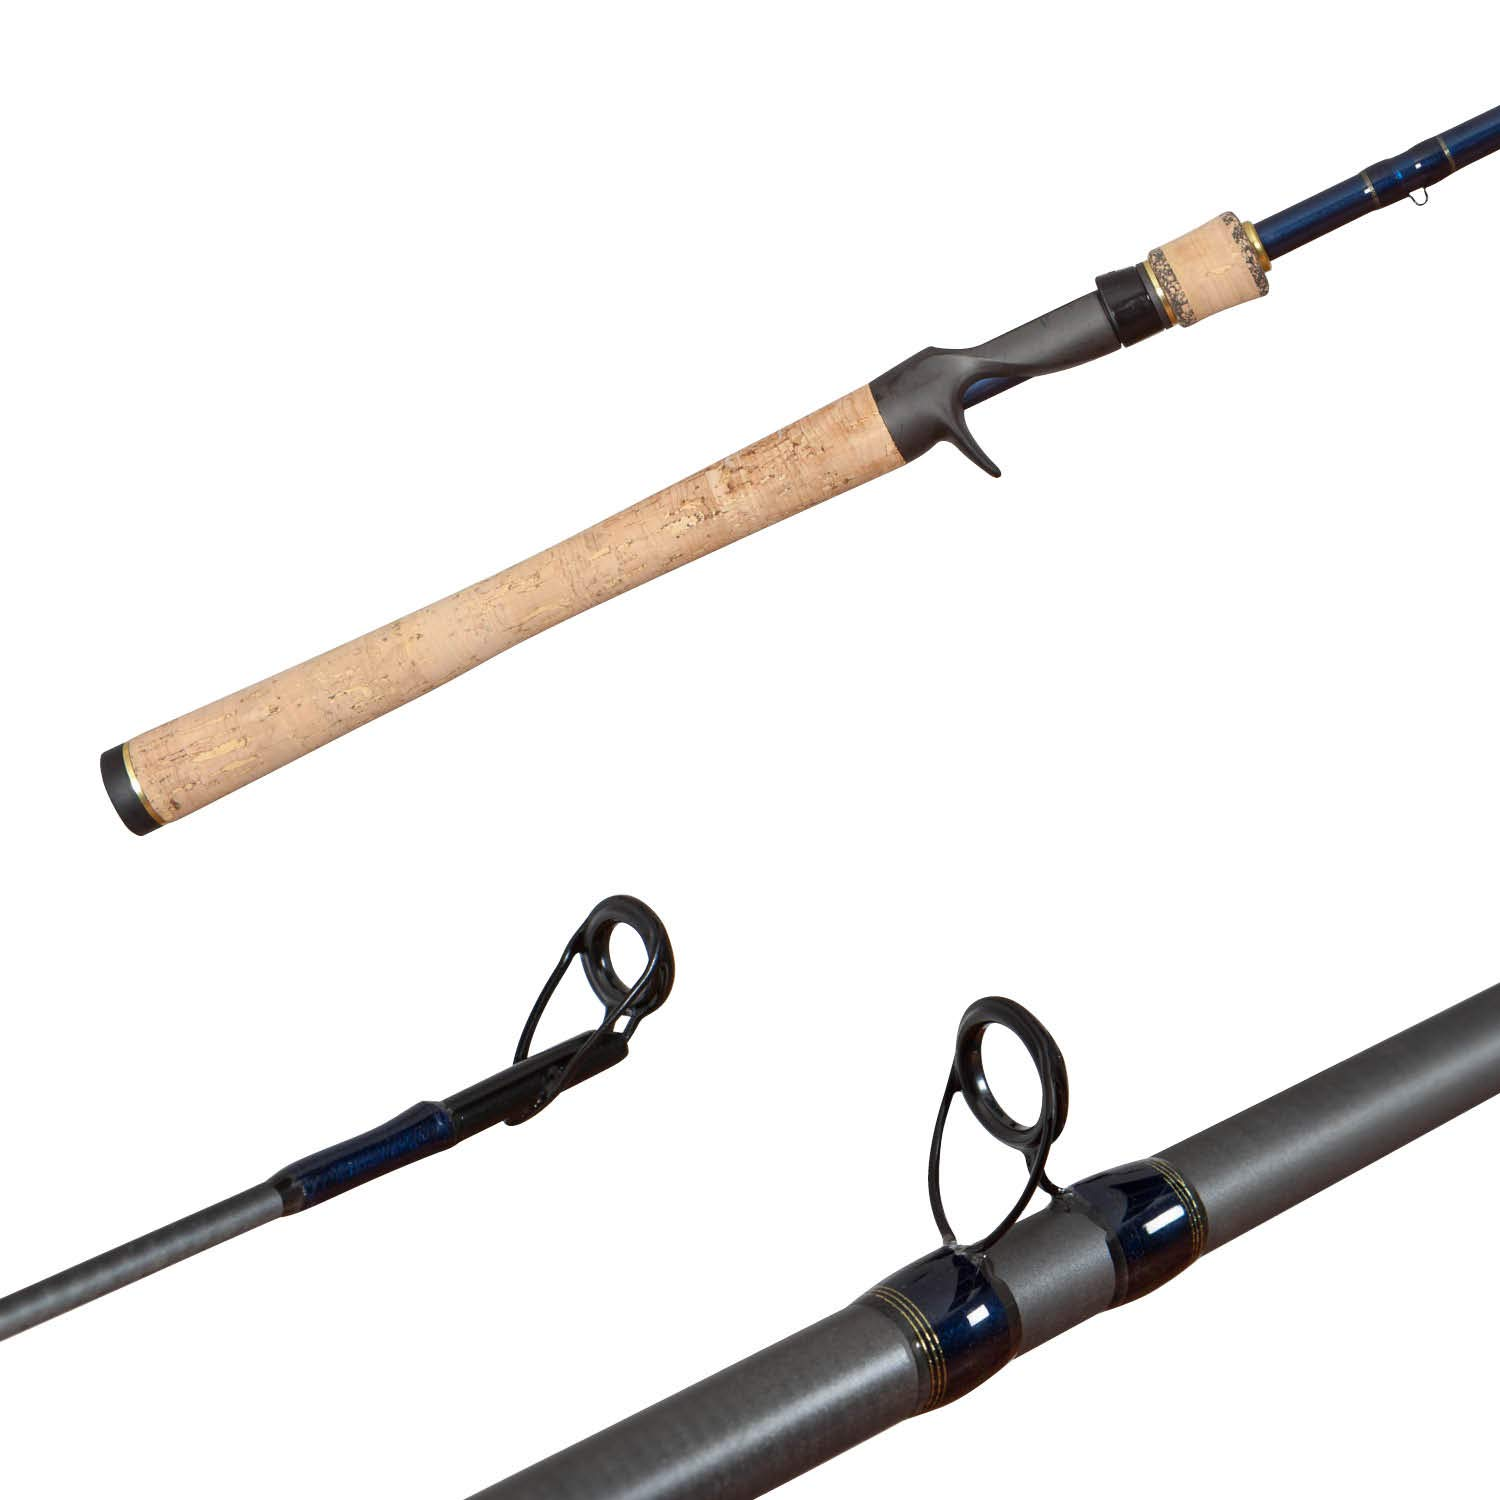 SHIMANO Compre 8 0 Muskie Casting Fishing Rod